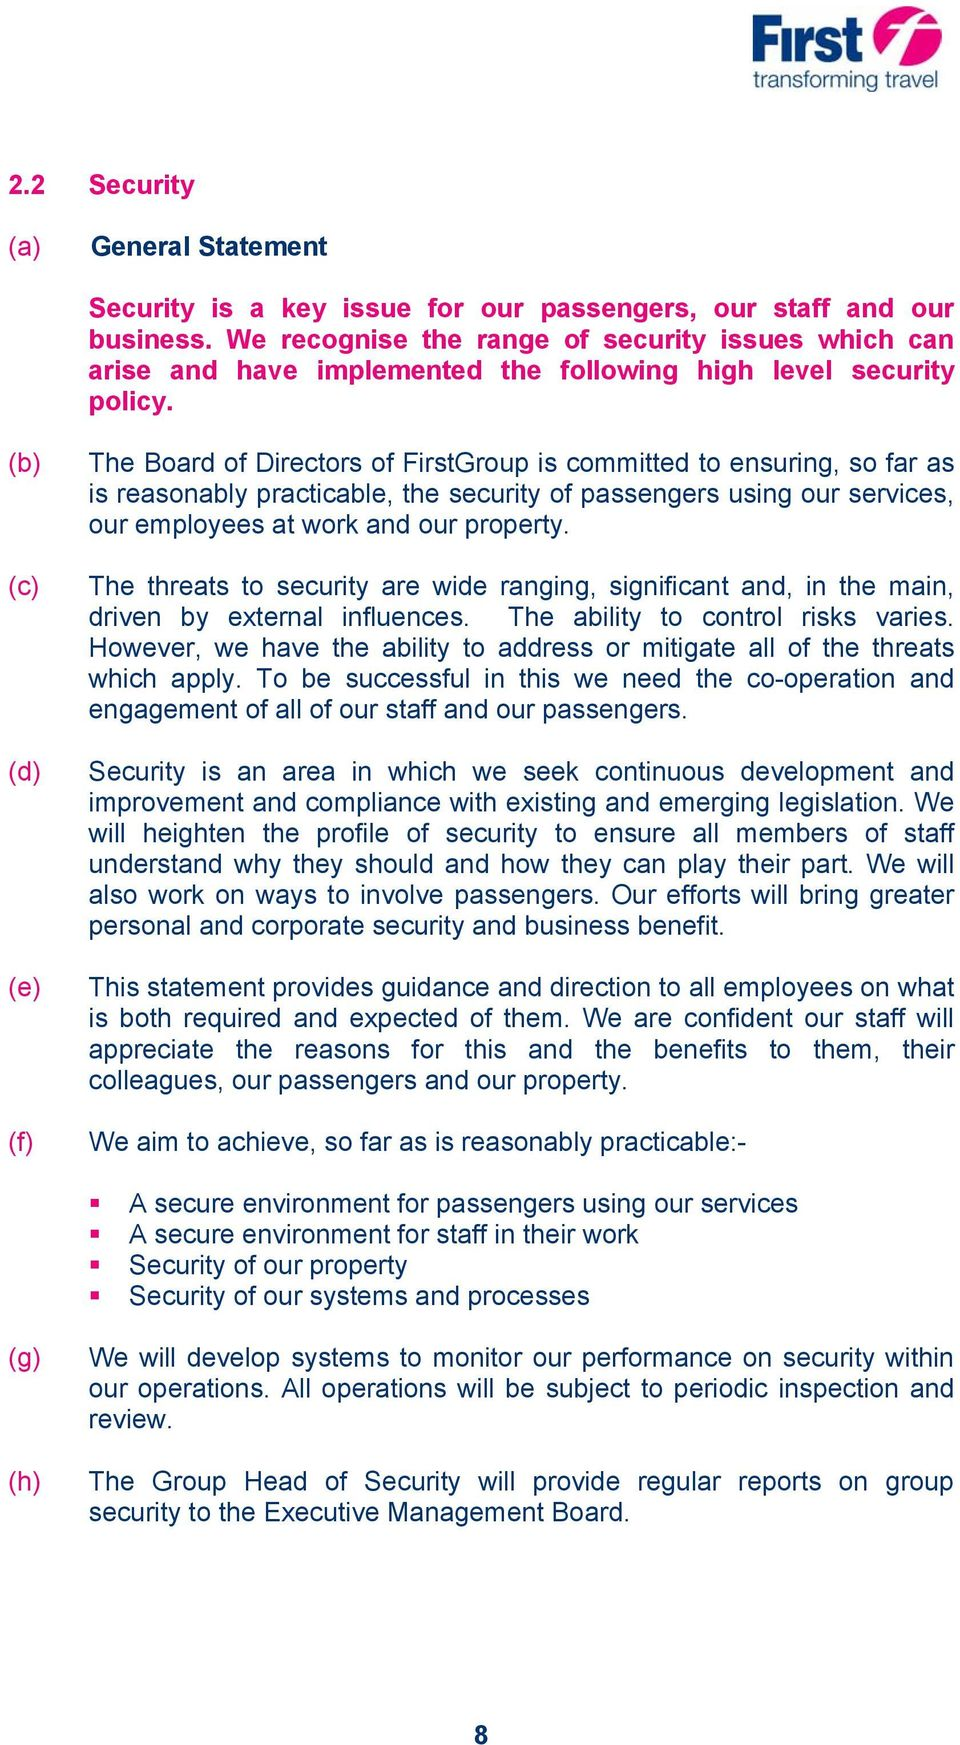 (c) (d) (e) (f) The Board of Directors of FirstGroup is committed to ensuring, so far as is reasonably practicable, the security of passengers using our services, our employees at work and our